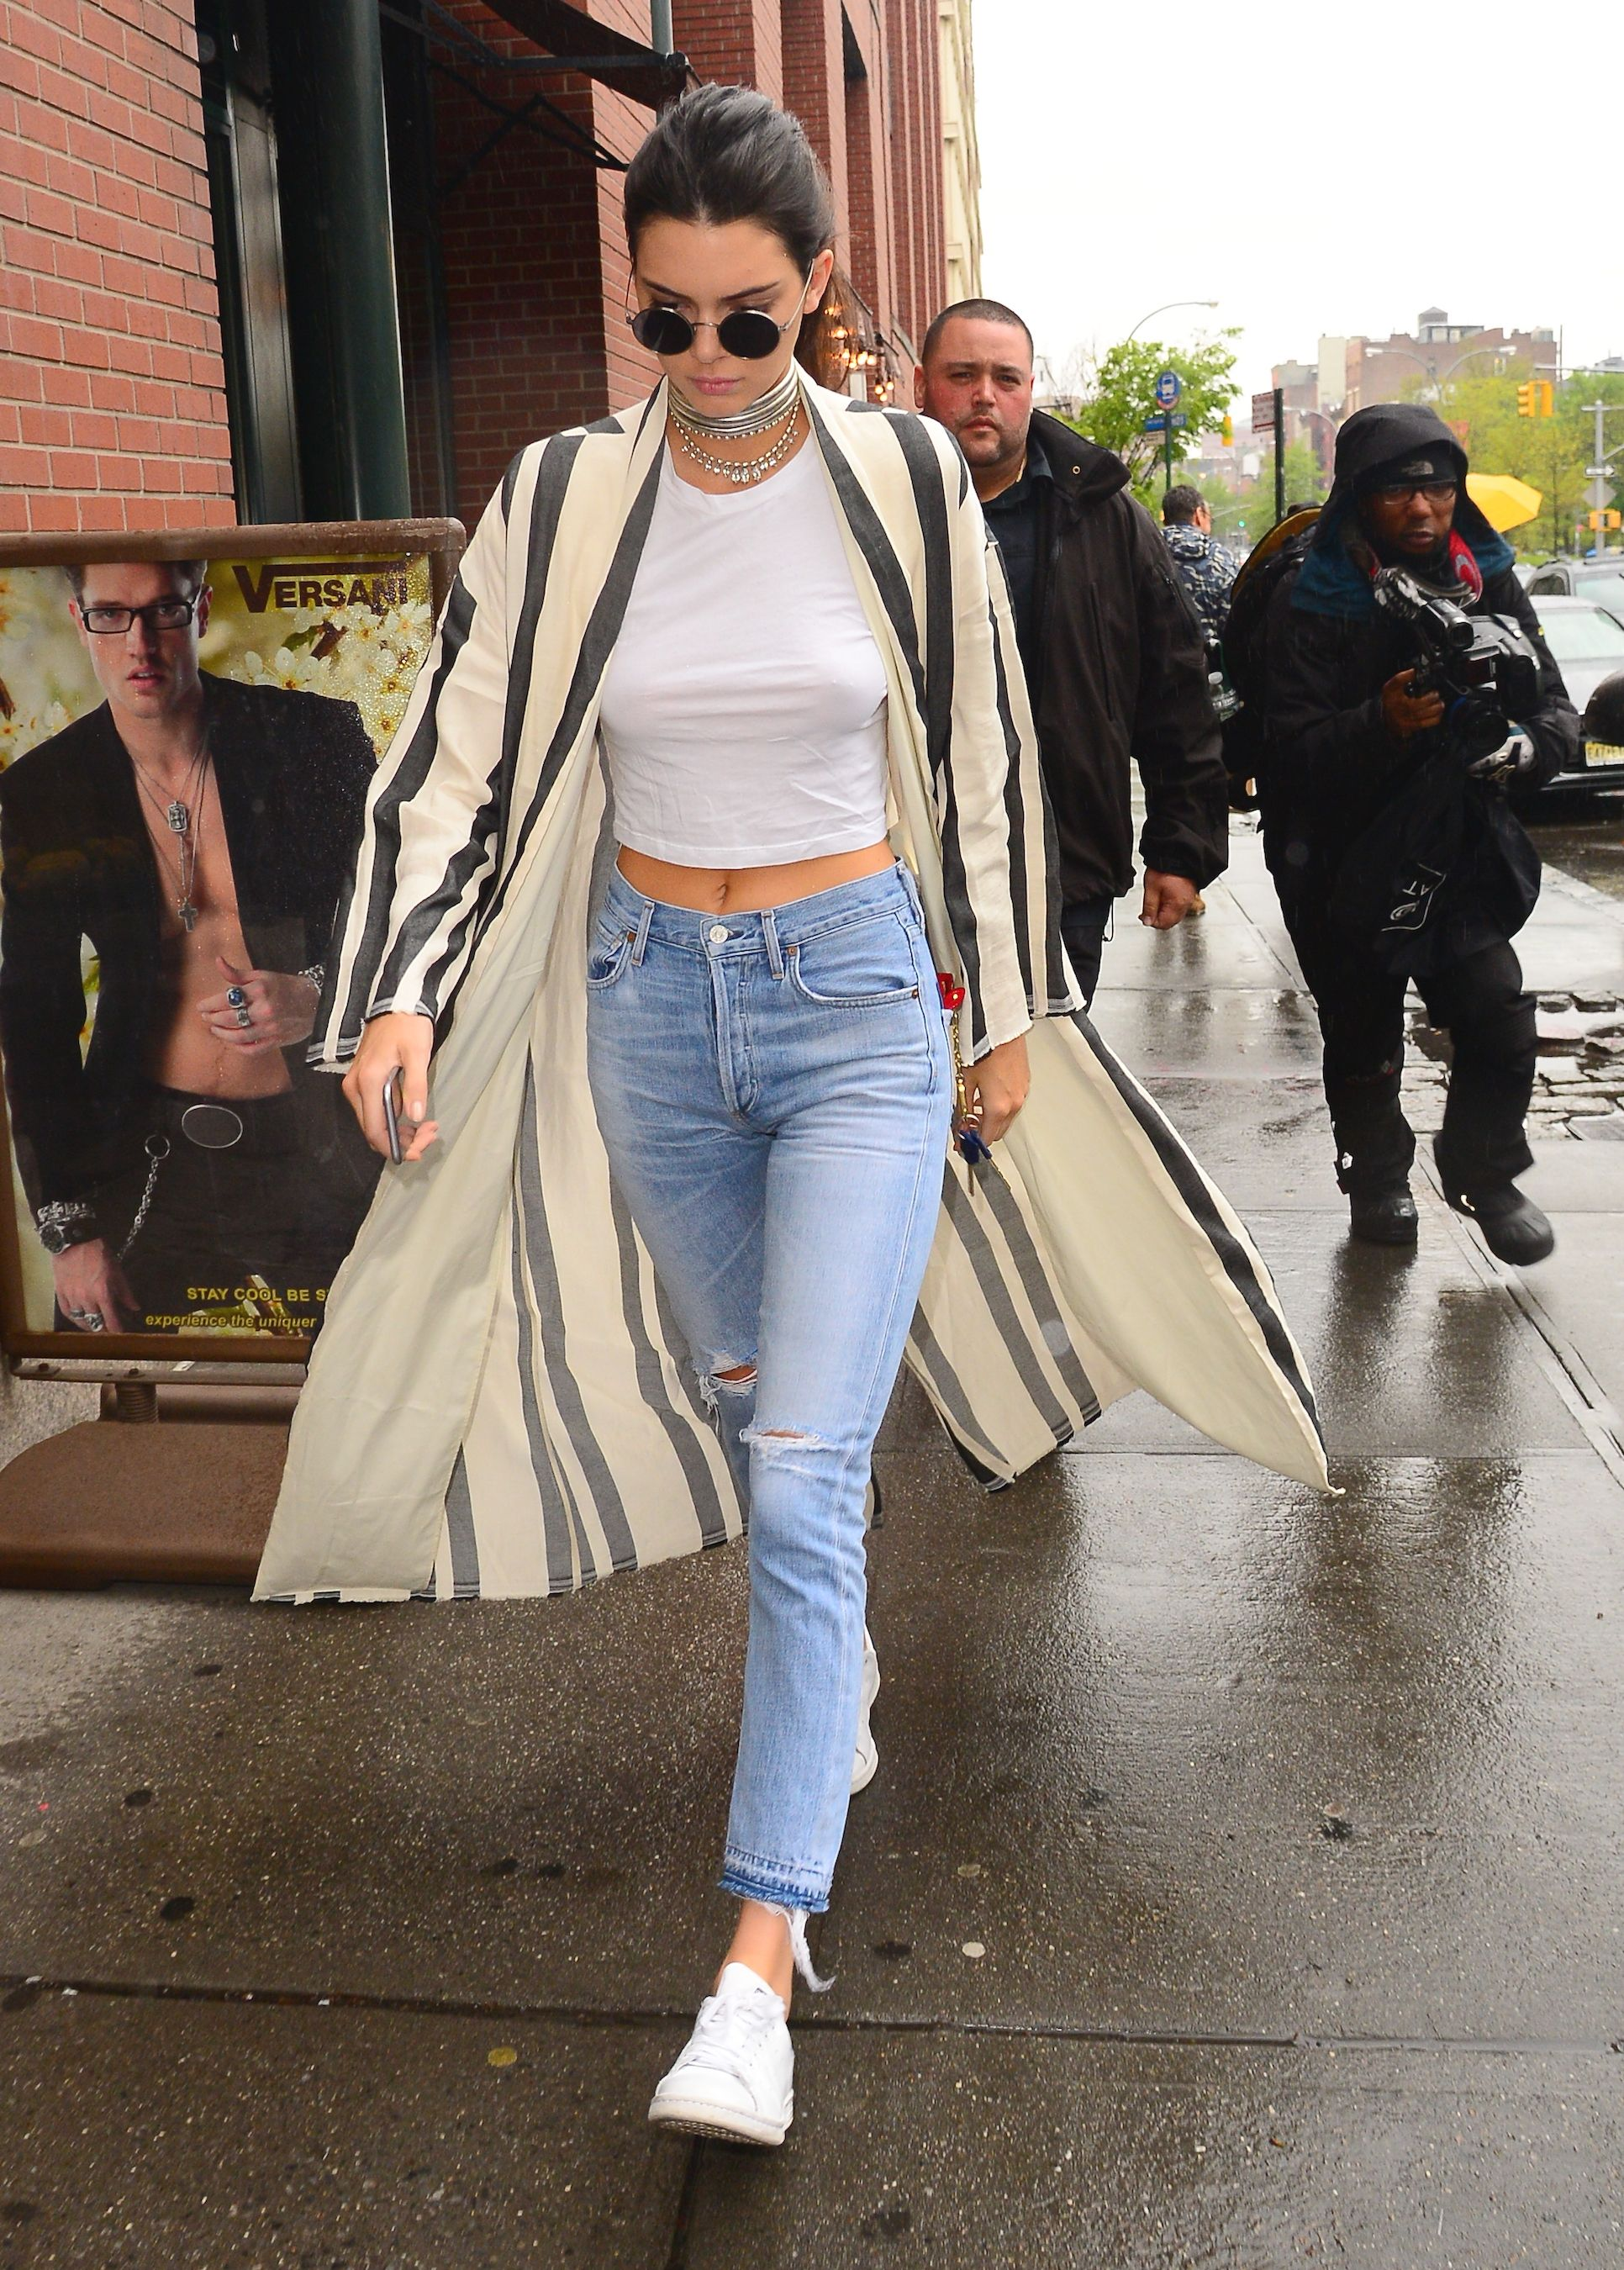 ef8cfc5f6f When You Don't Know What to Wear, Take Inspo From Kendall Jenner ...